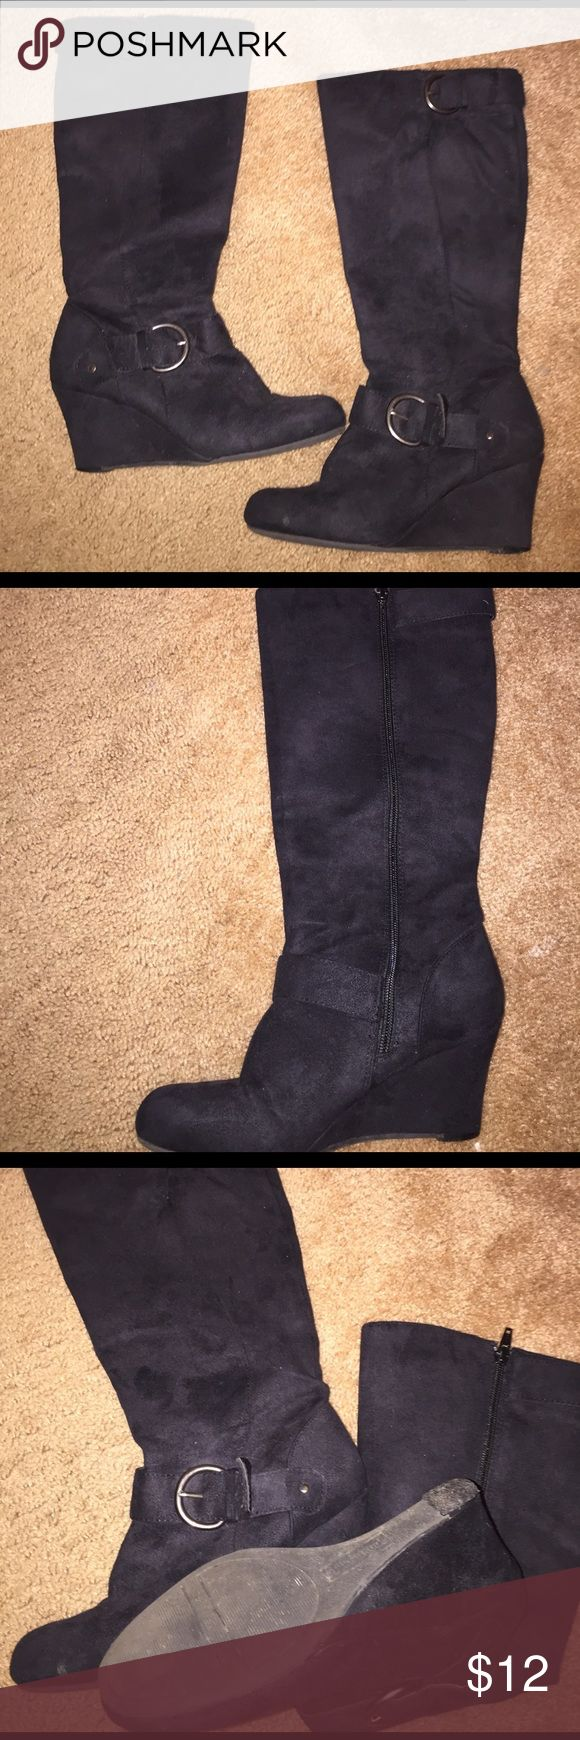 Black, wedge boots Black boots with buckles. A little worn on the bottom heel but in good condition. Shoes Heeled Boots